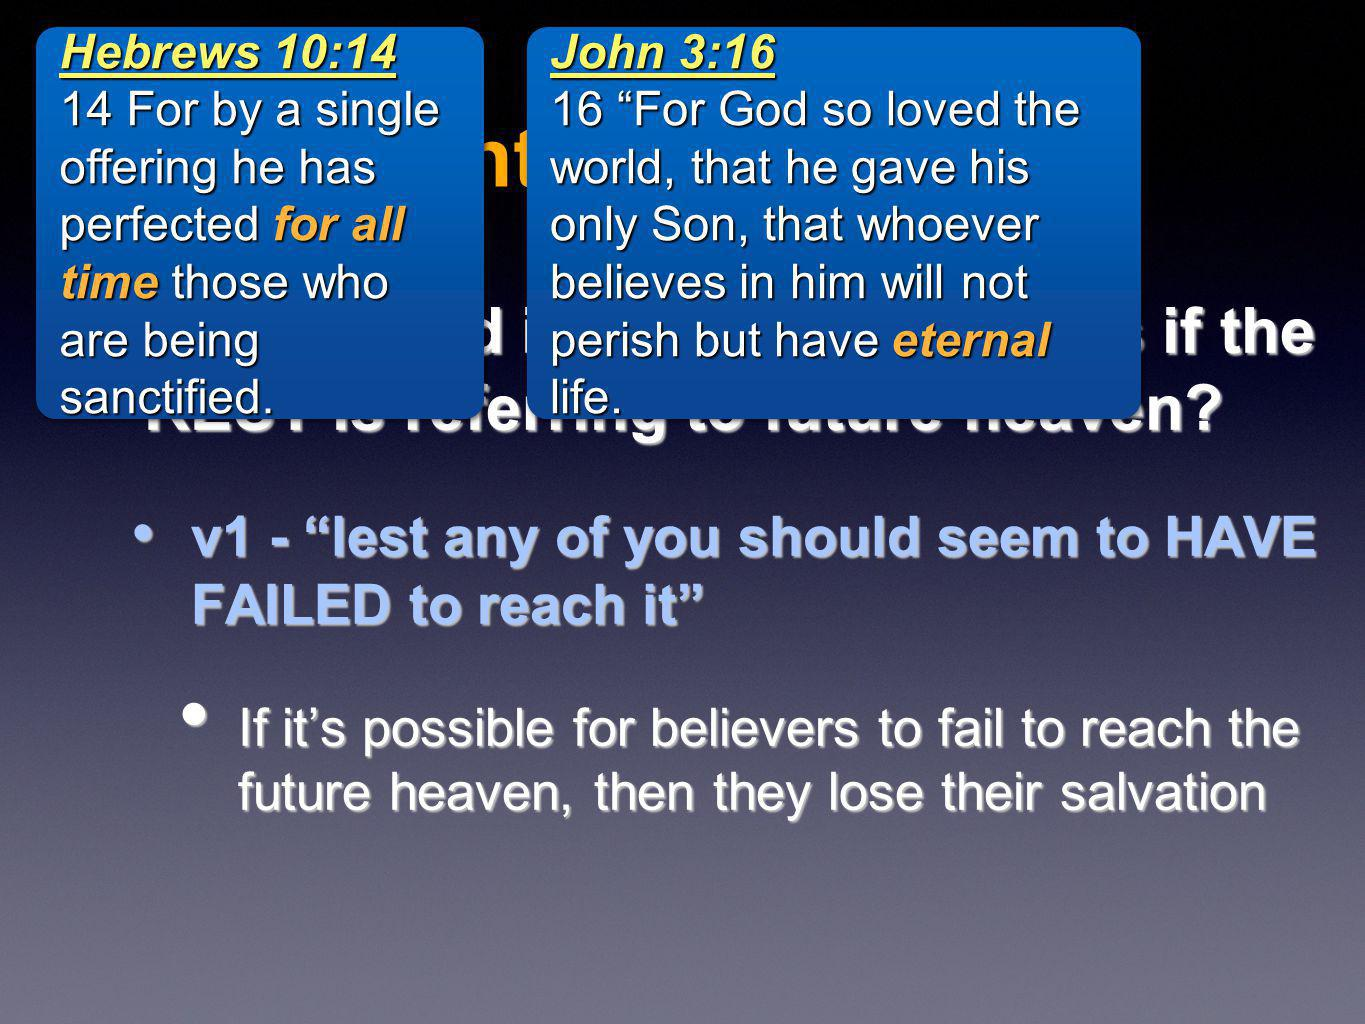 What would it mean for believers if the REST is referring to future heaven.